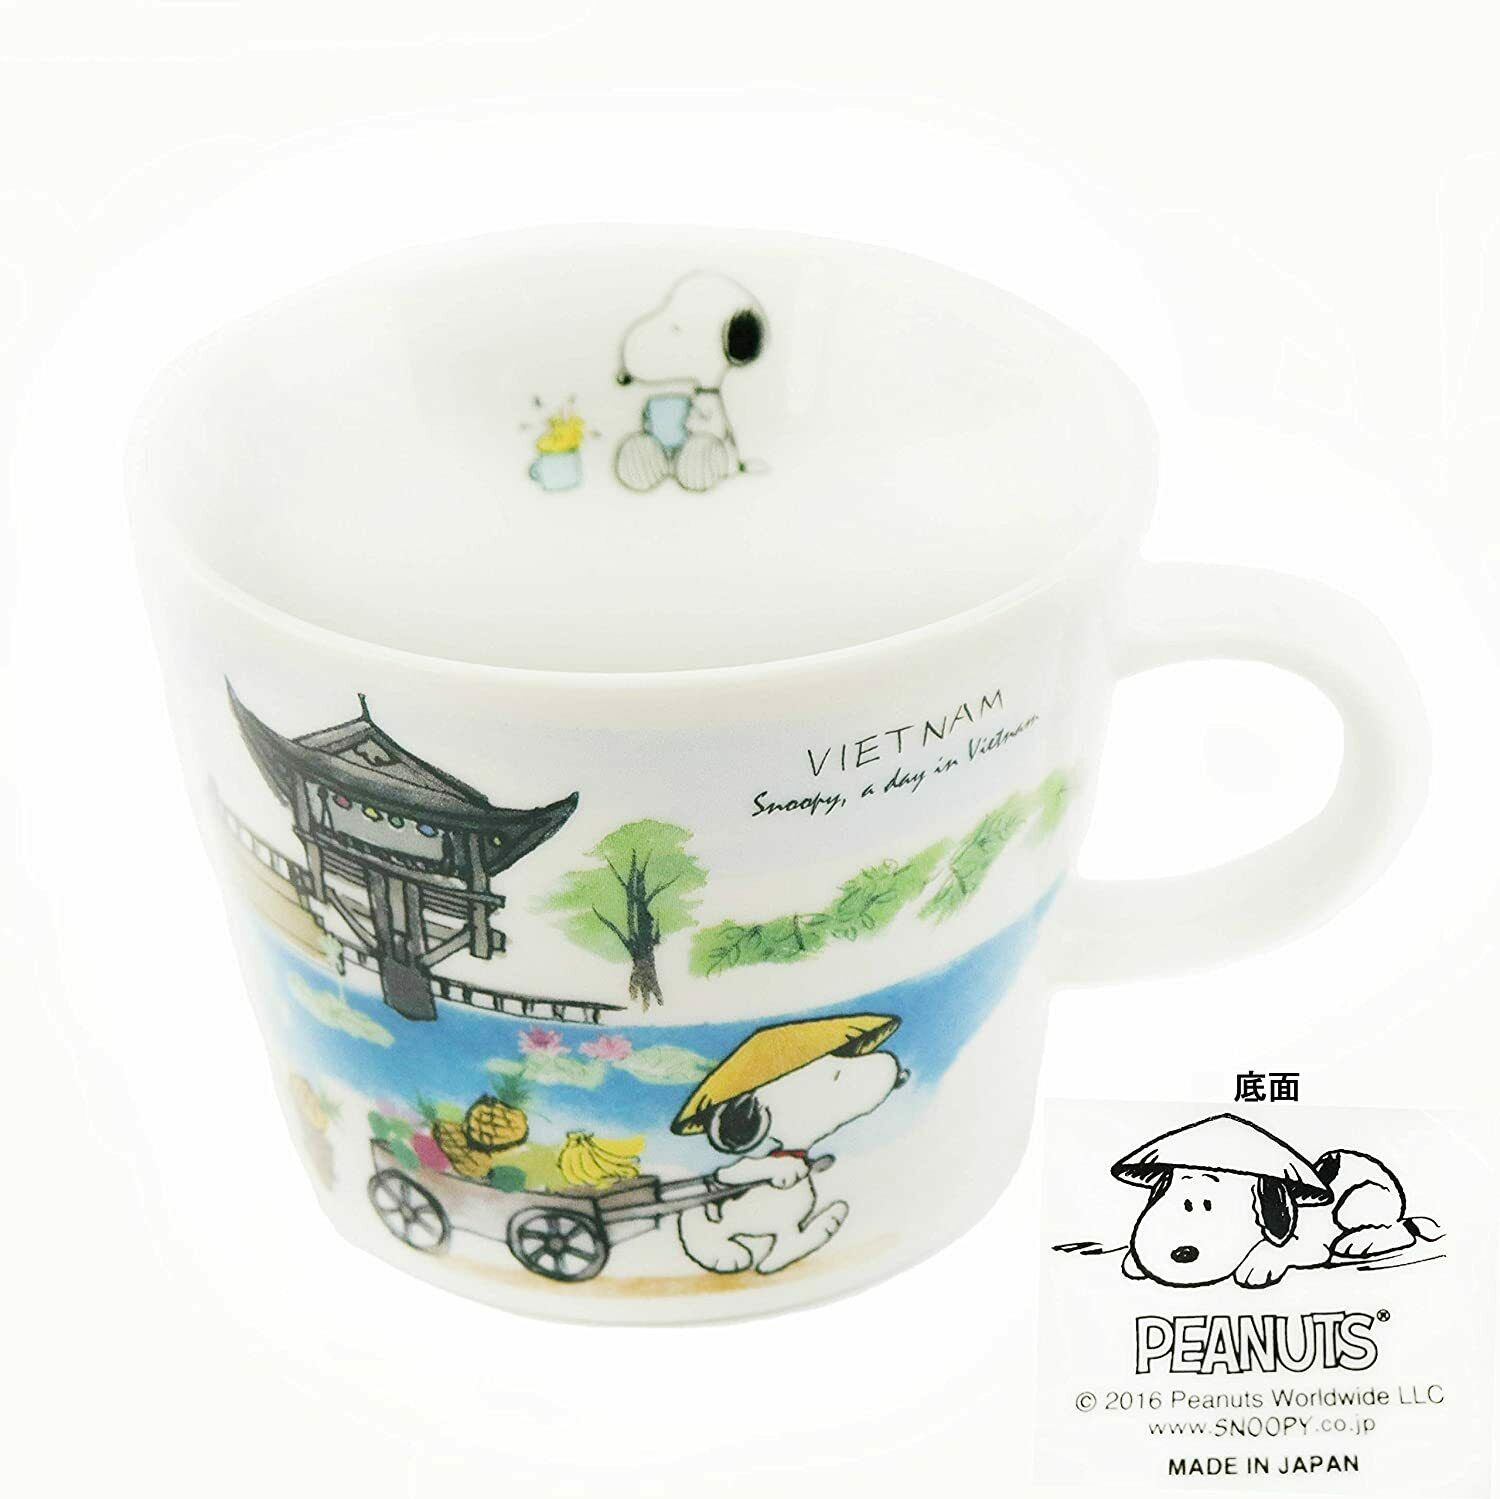 Peanuts Snoopy Porcelain Mug Cup World Tour Series 340 ml Set of 4 Country Japan